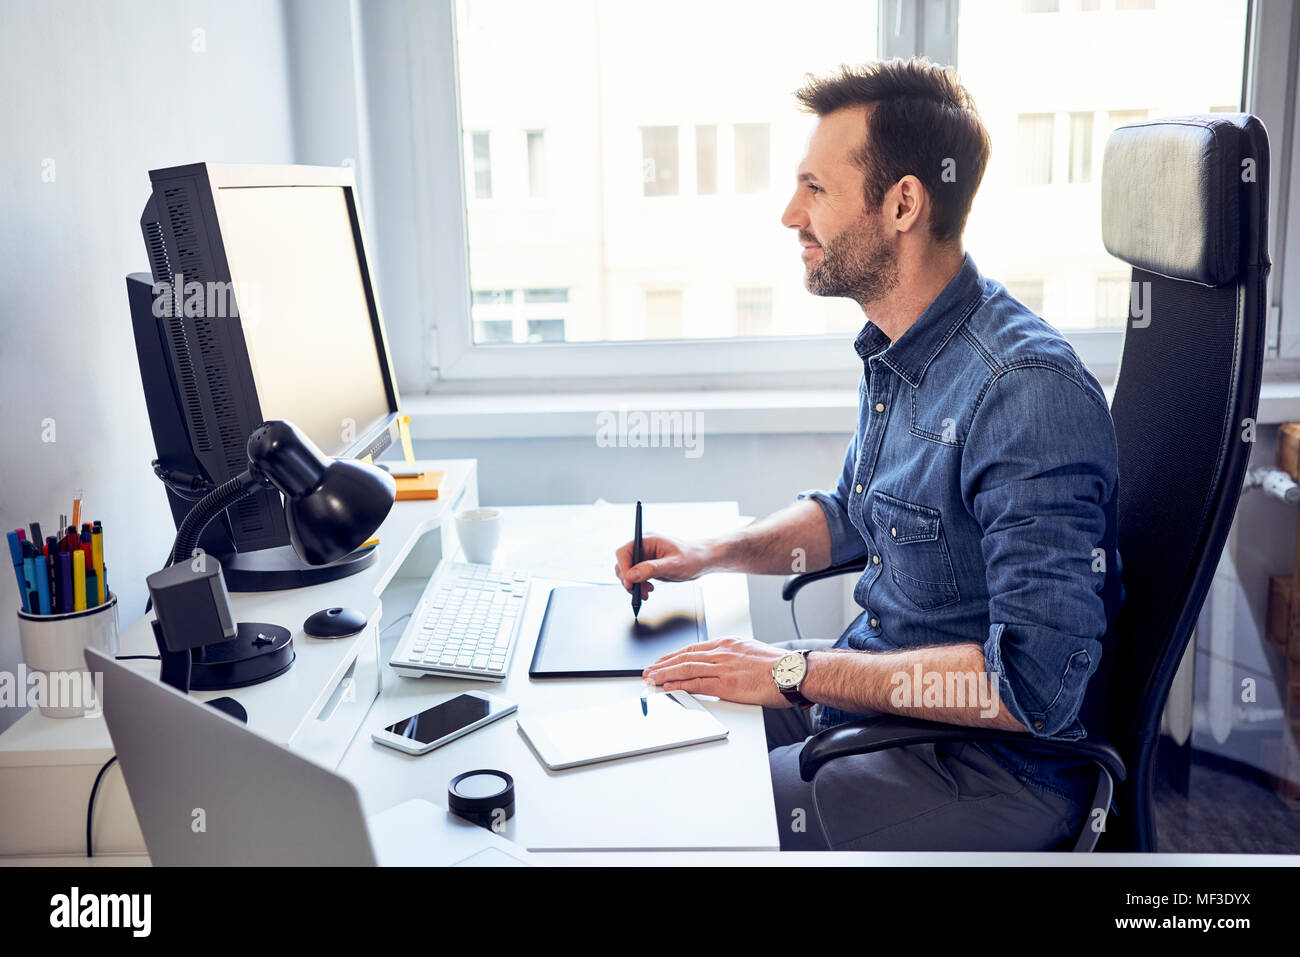 Smiling graphic designer working on computer at desk in office - Stock Image